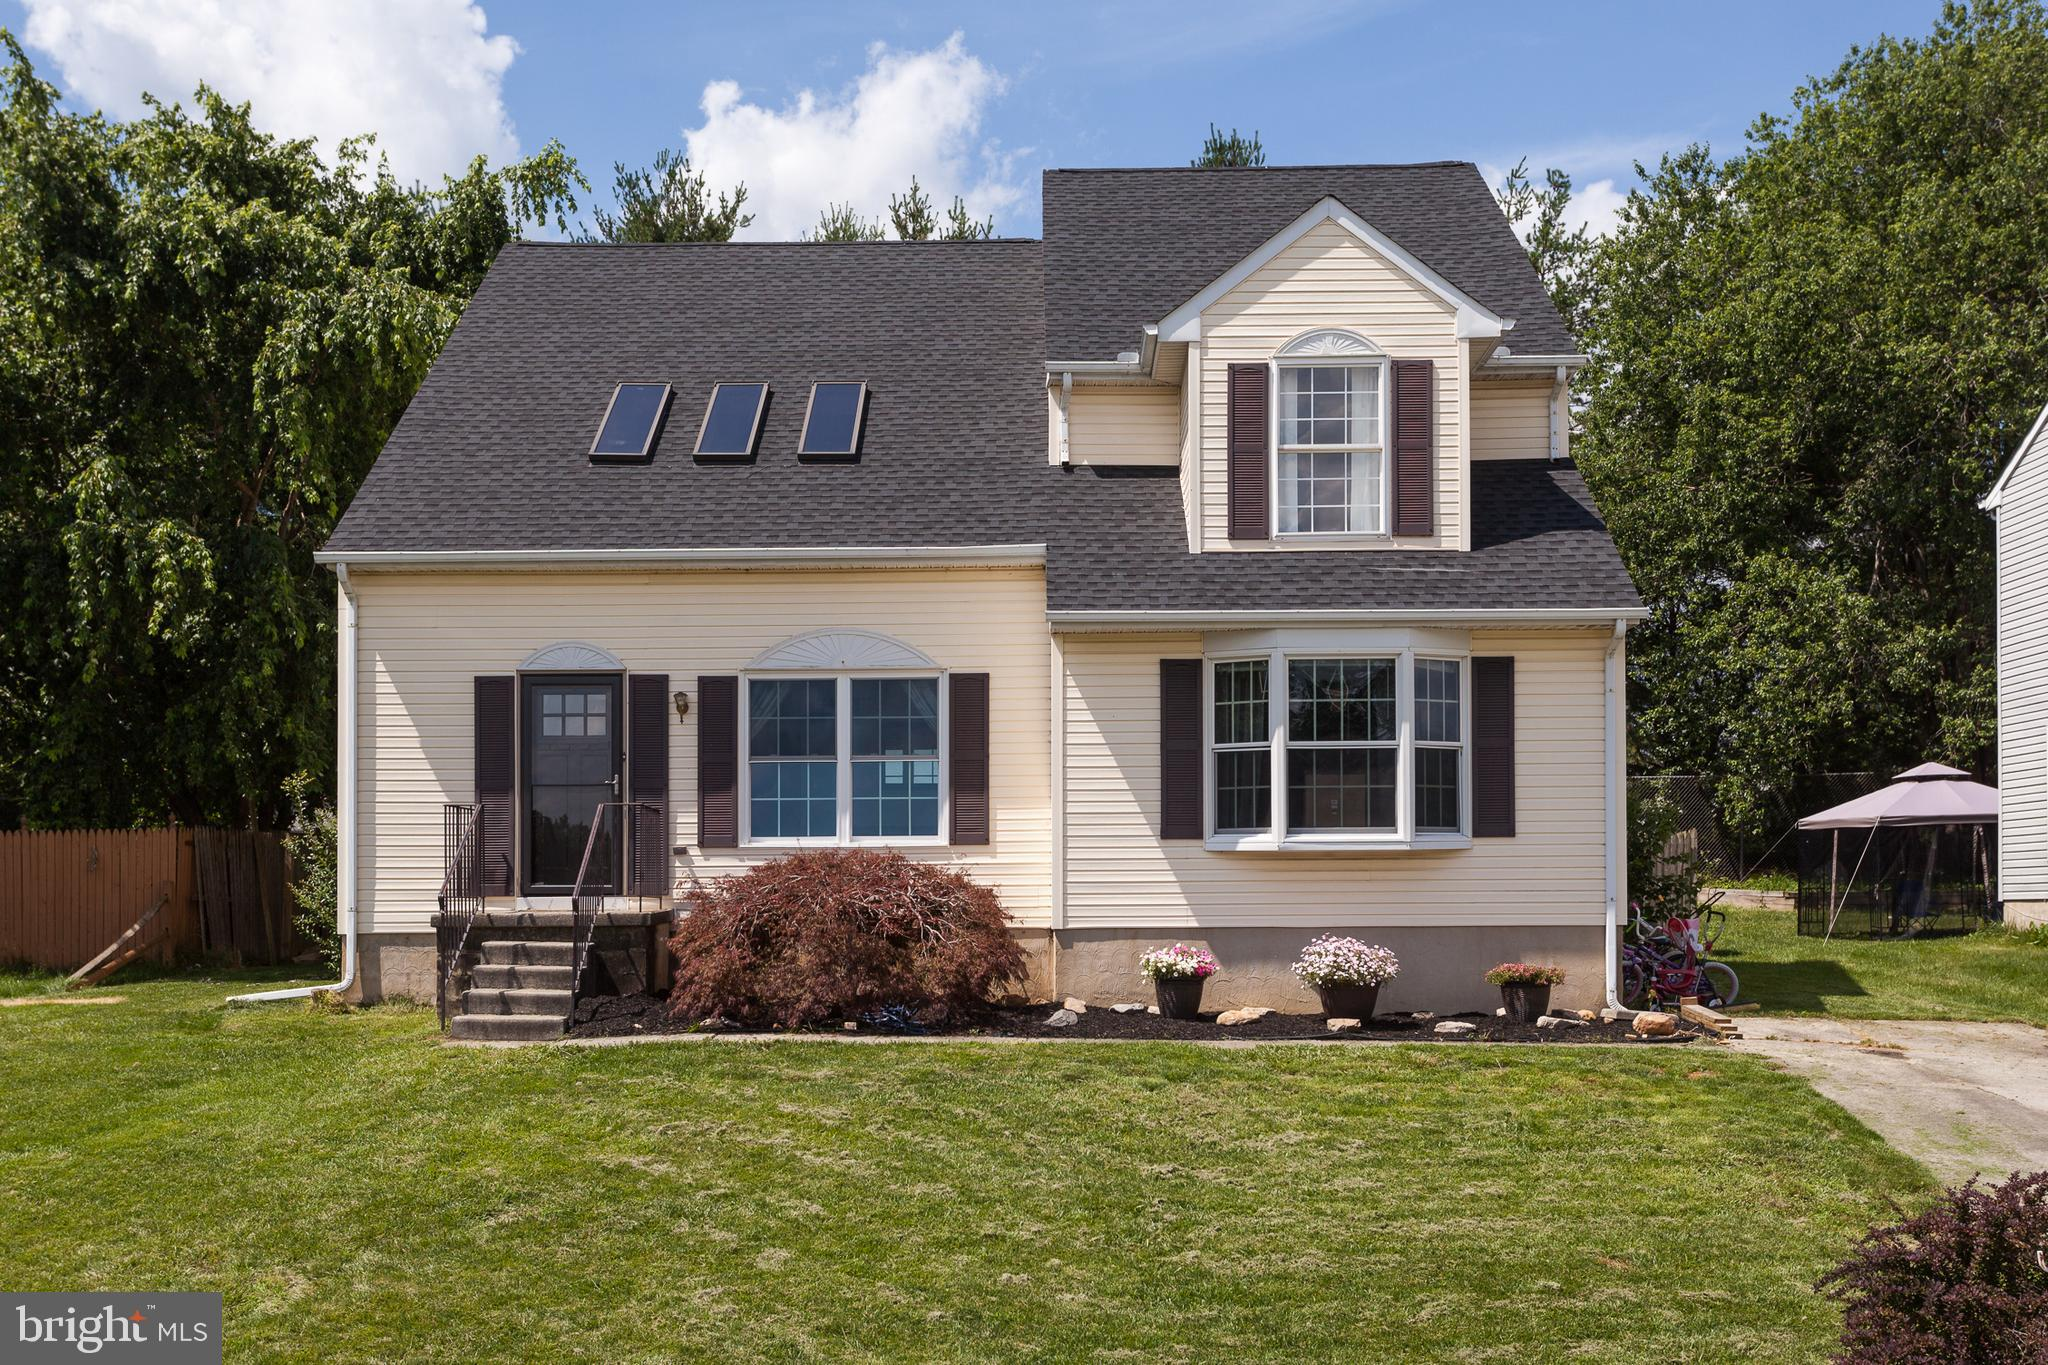 Gorgeous home ready for you to move in! This home has almost 3000 sq ft and tons of upgrades. New ro